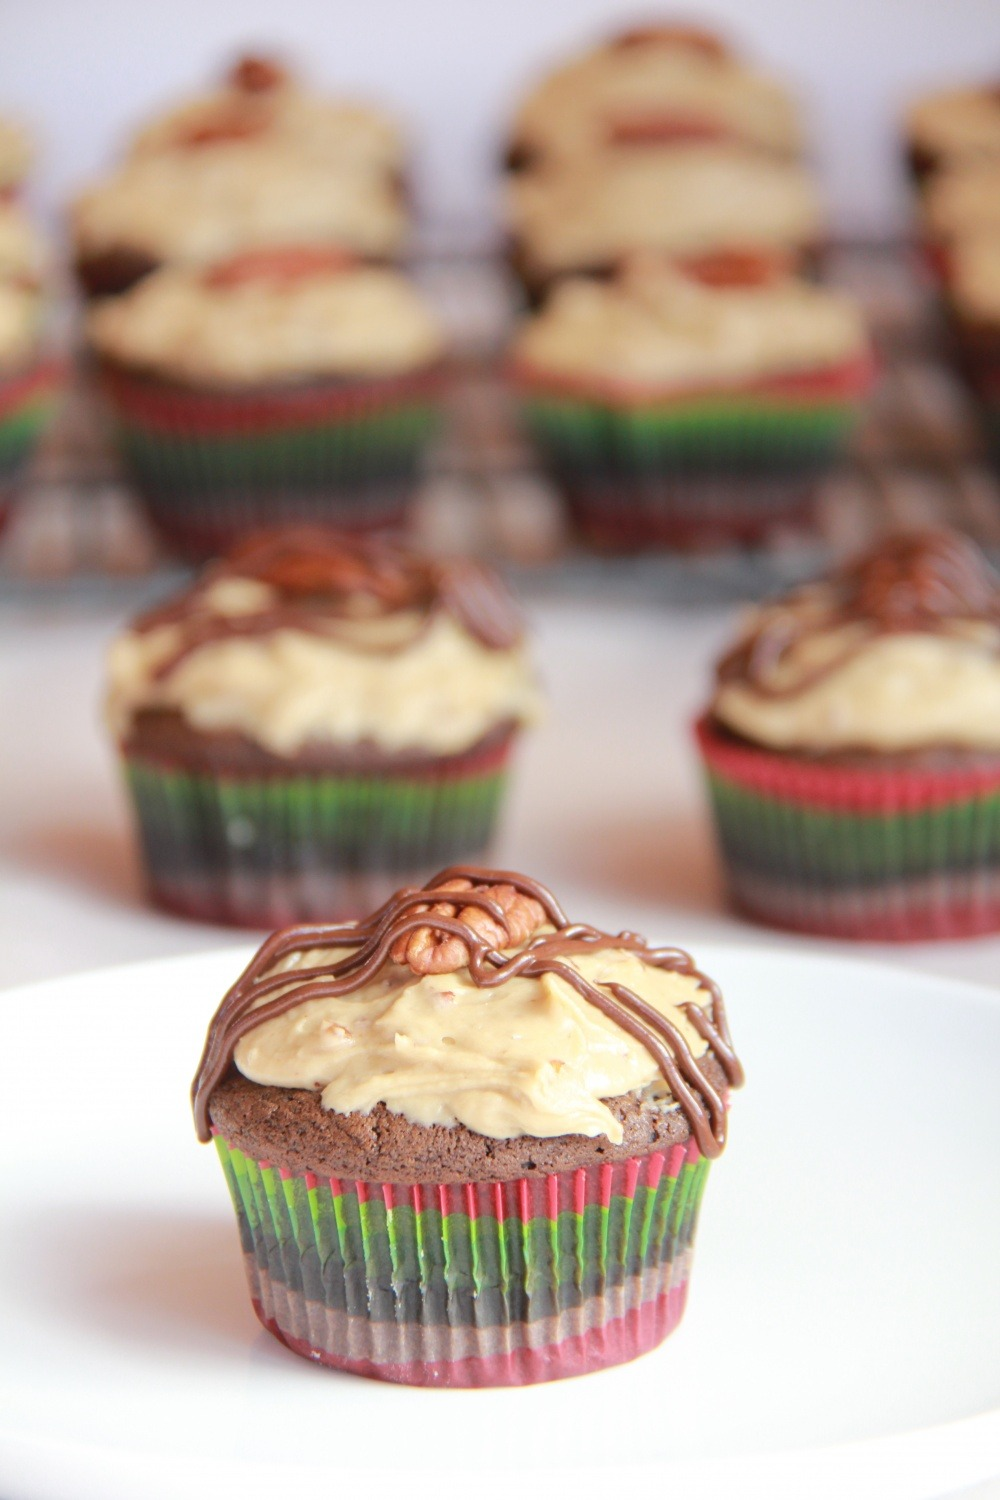 Recipe: Chocolate Bourbon Cupcakes with Butter Pecan Frosting